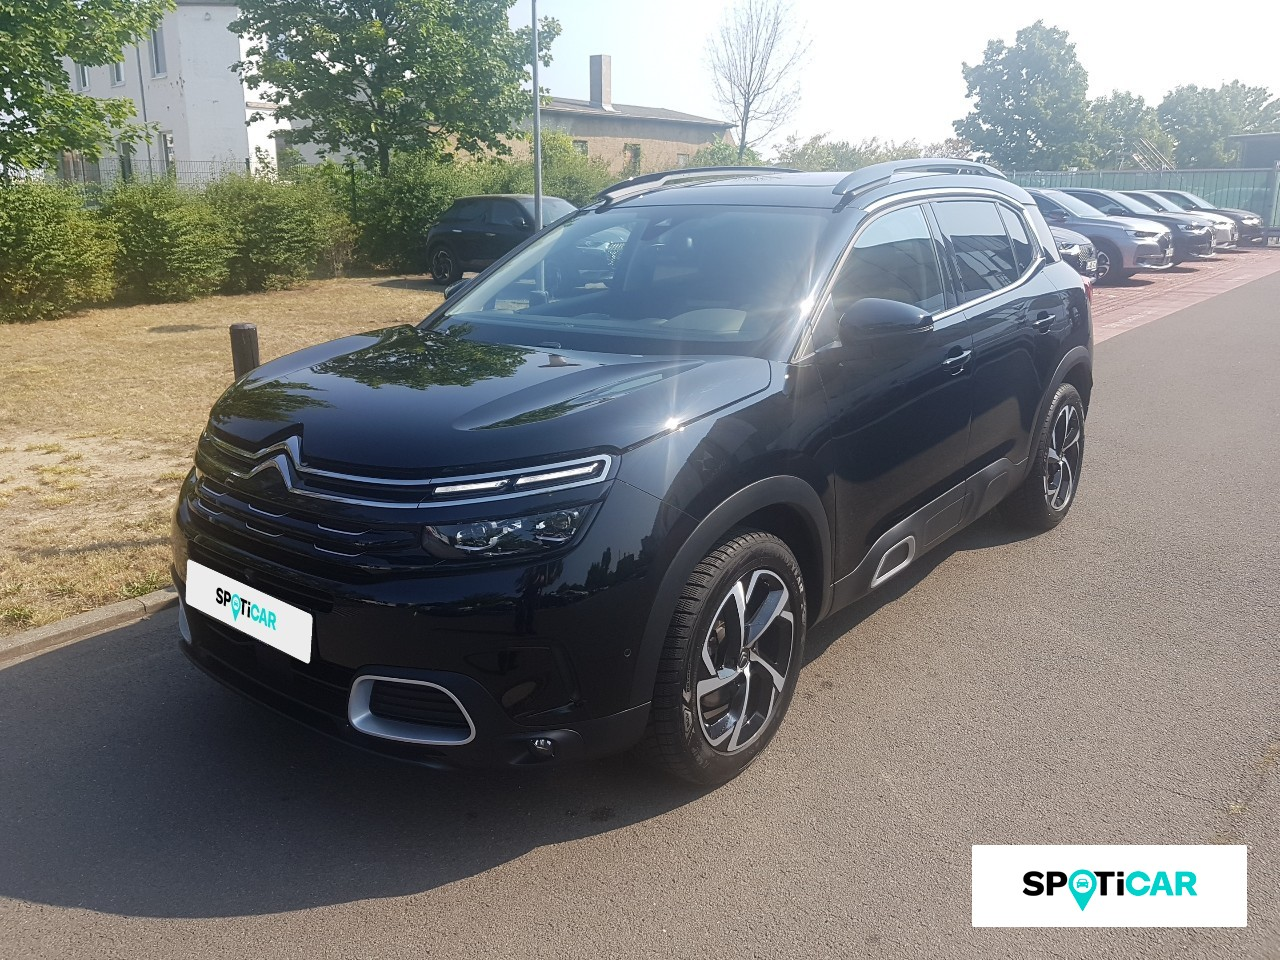 Citroën C5 Aircross SHINE BlueHDI 180 EAT8/ Navi/ Dach/ SHZ/ DAB